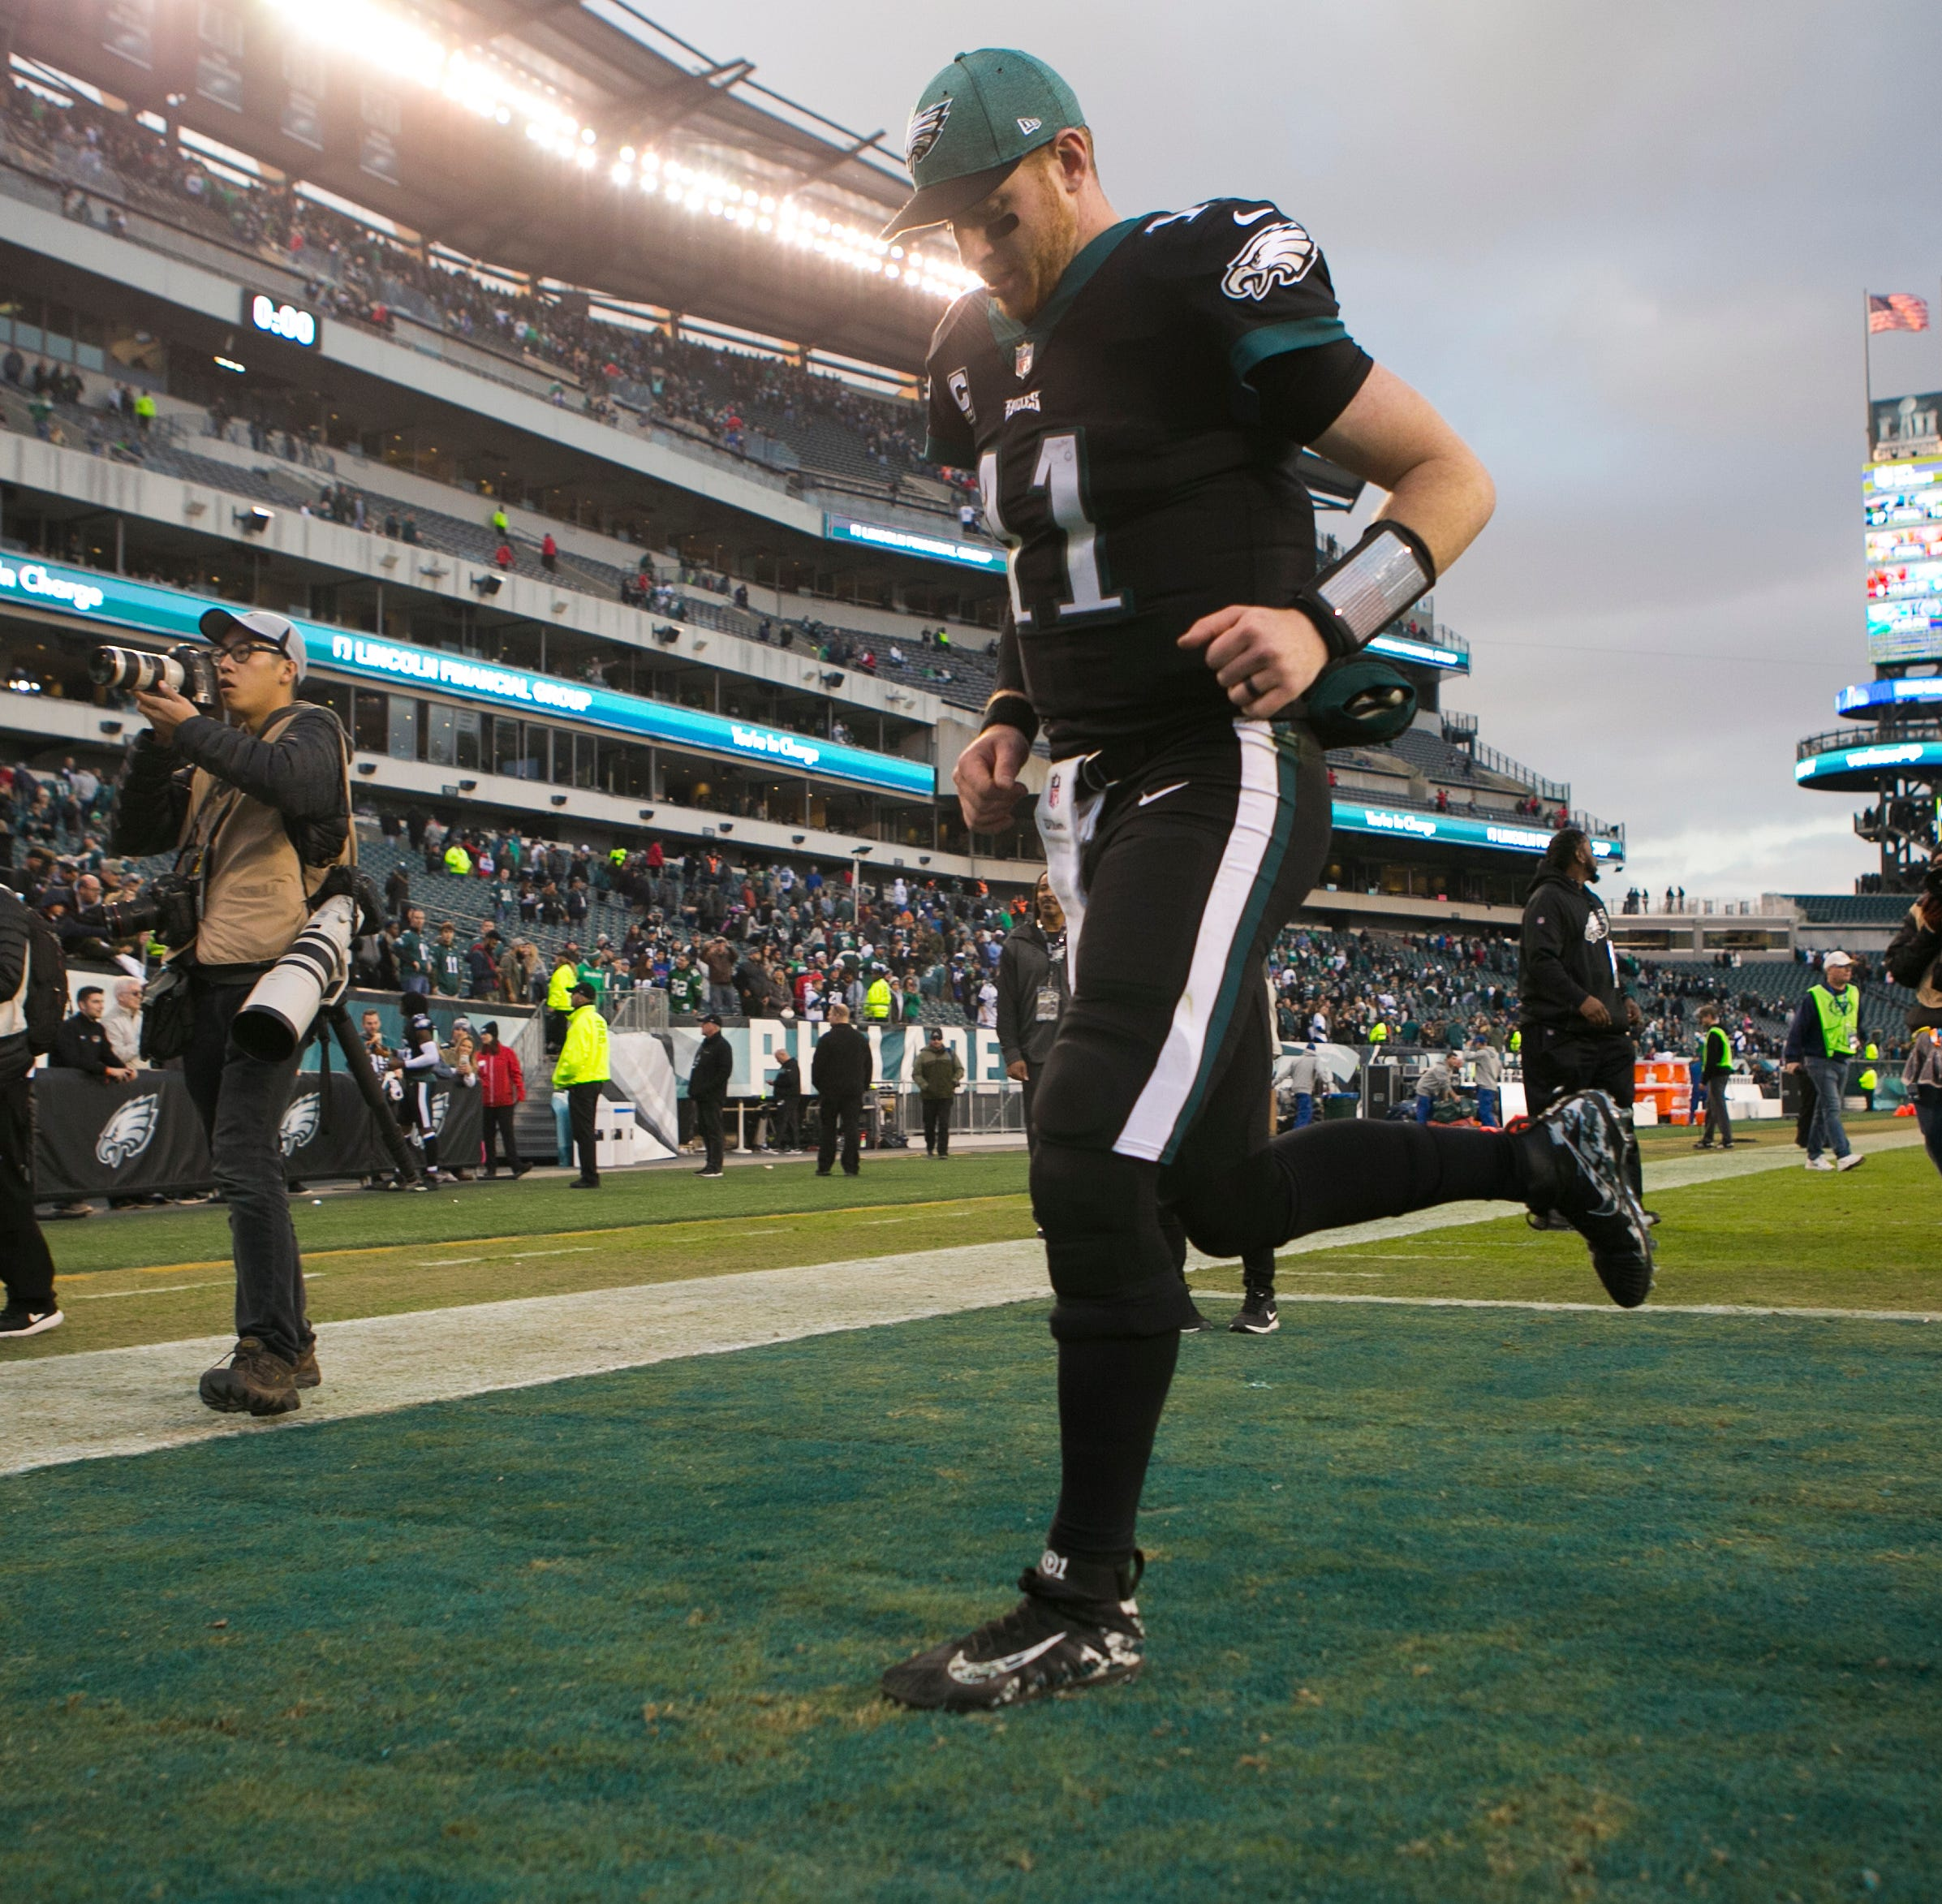 Eagles' offseason: 5 burning questions, beginning with Carson Wentz's contract